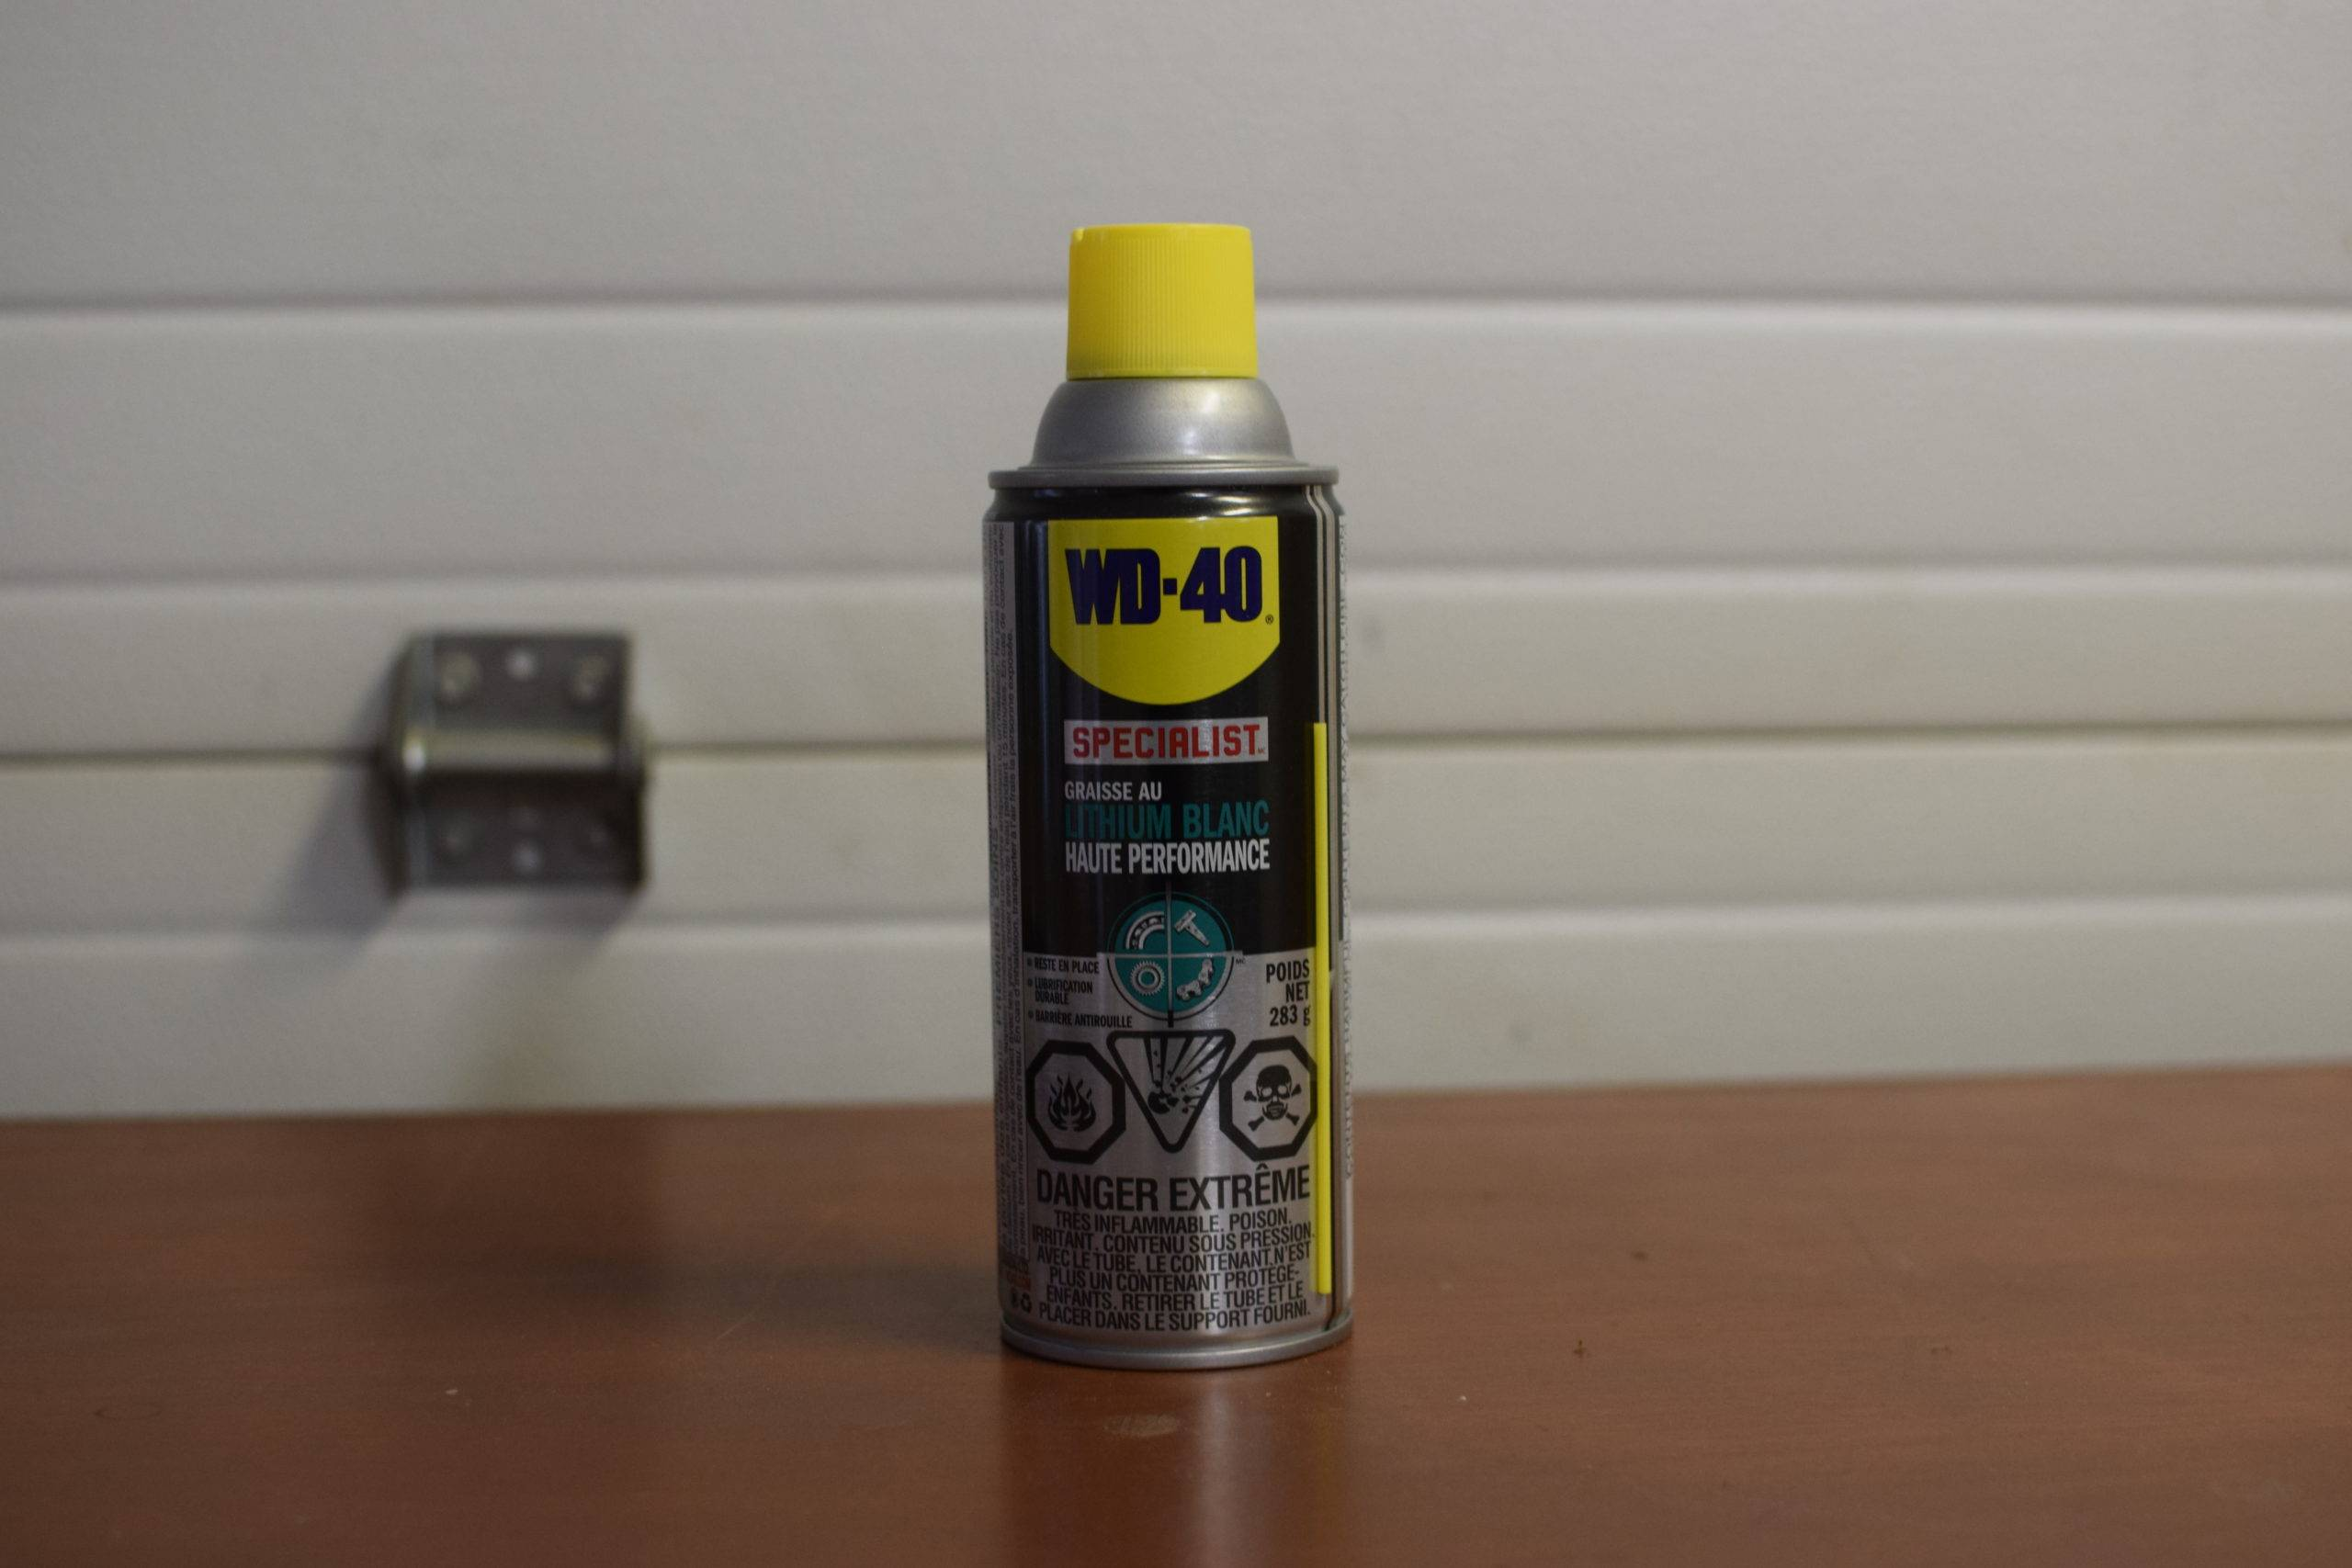 Bottle of lubricant